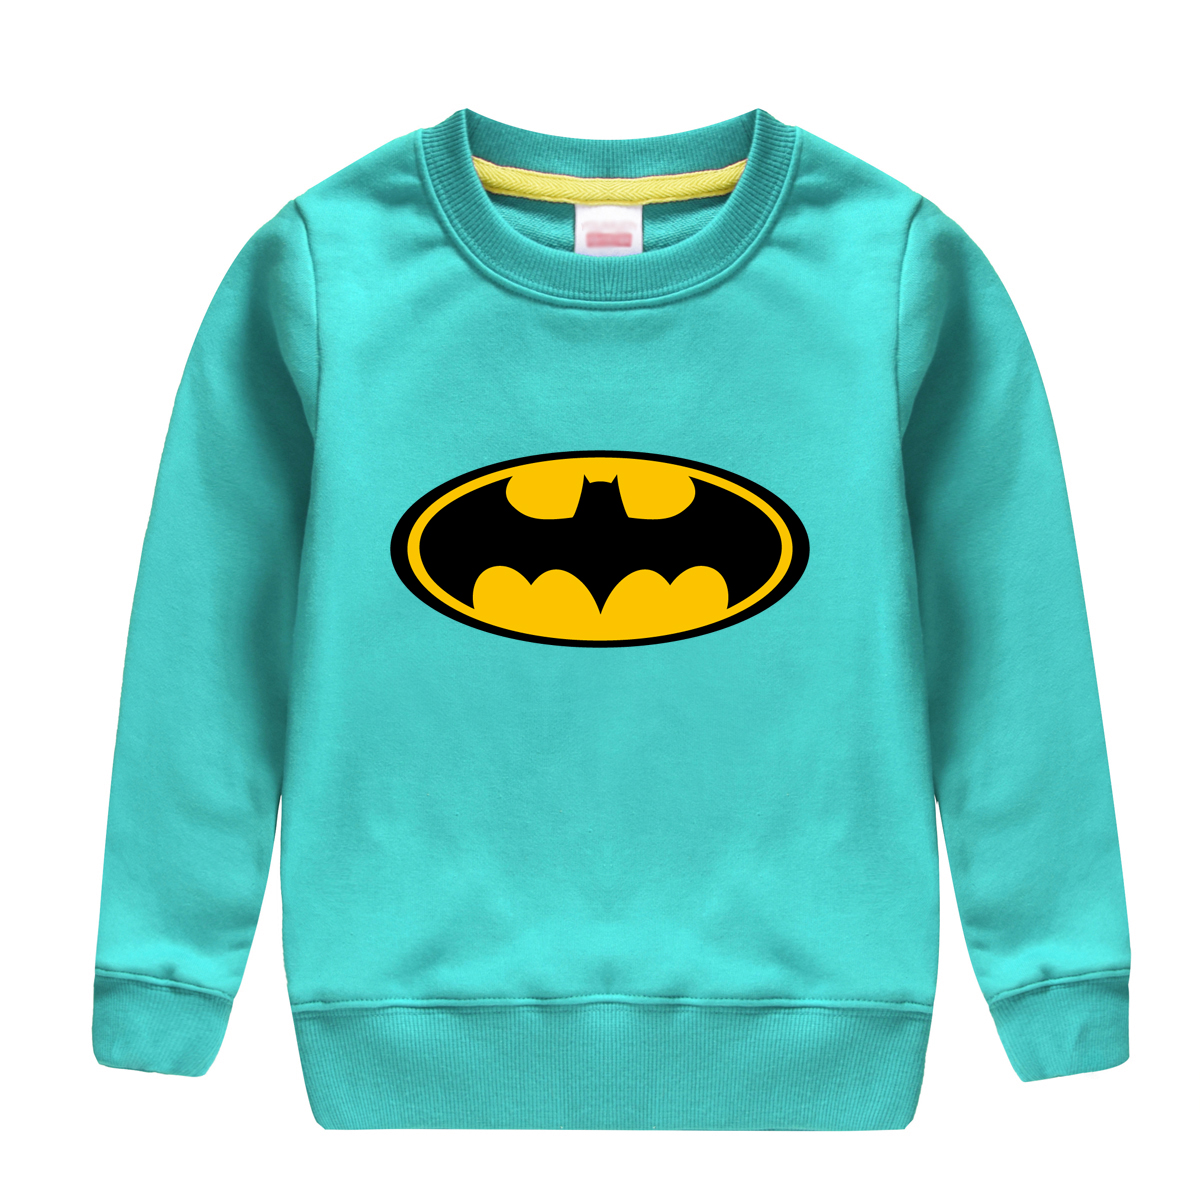 2018 hot sale Batman patten printed winter autumn sweatshirt full sleve O-neck cotton pullover baby boy hoodie clothing for kids